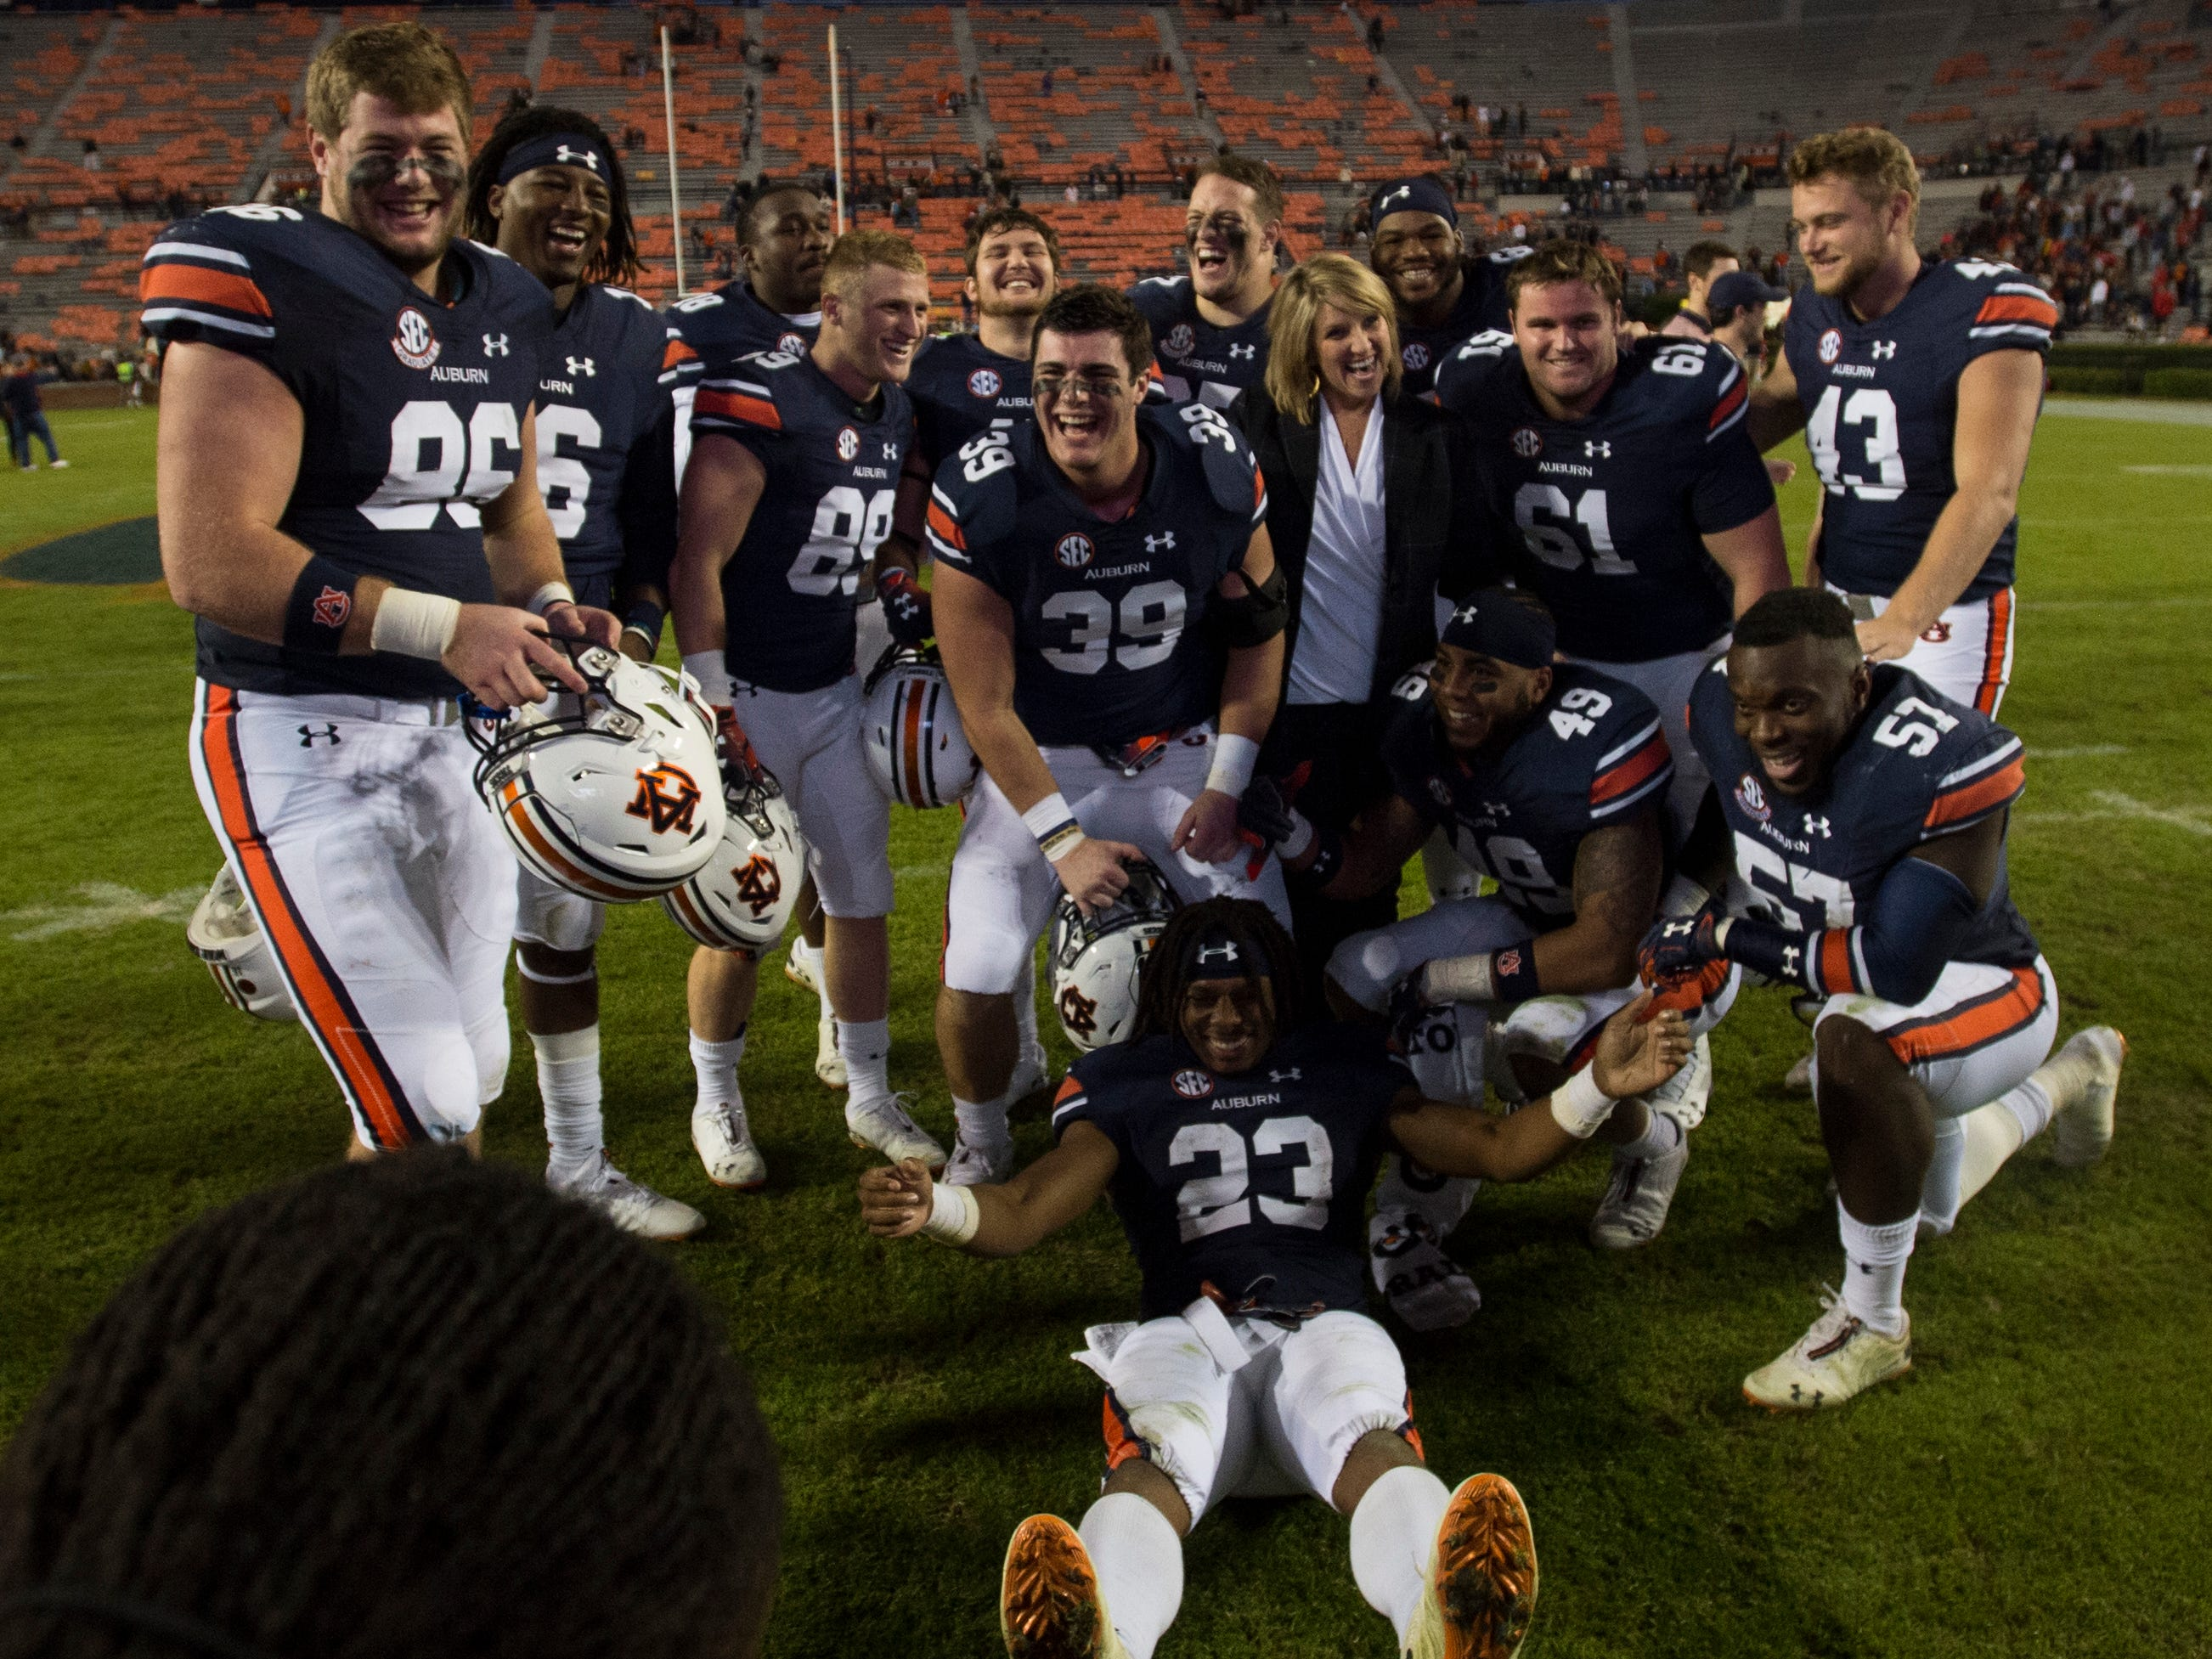 Auburn senior players pose for a picture on senior day after the game at Jordan-Hare Stadium in Auburn, Ala., on Saturday, Nov.. 17, 2018. Auburn defeated Liberty 53-0.